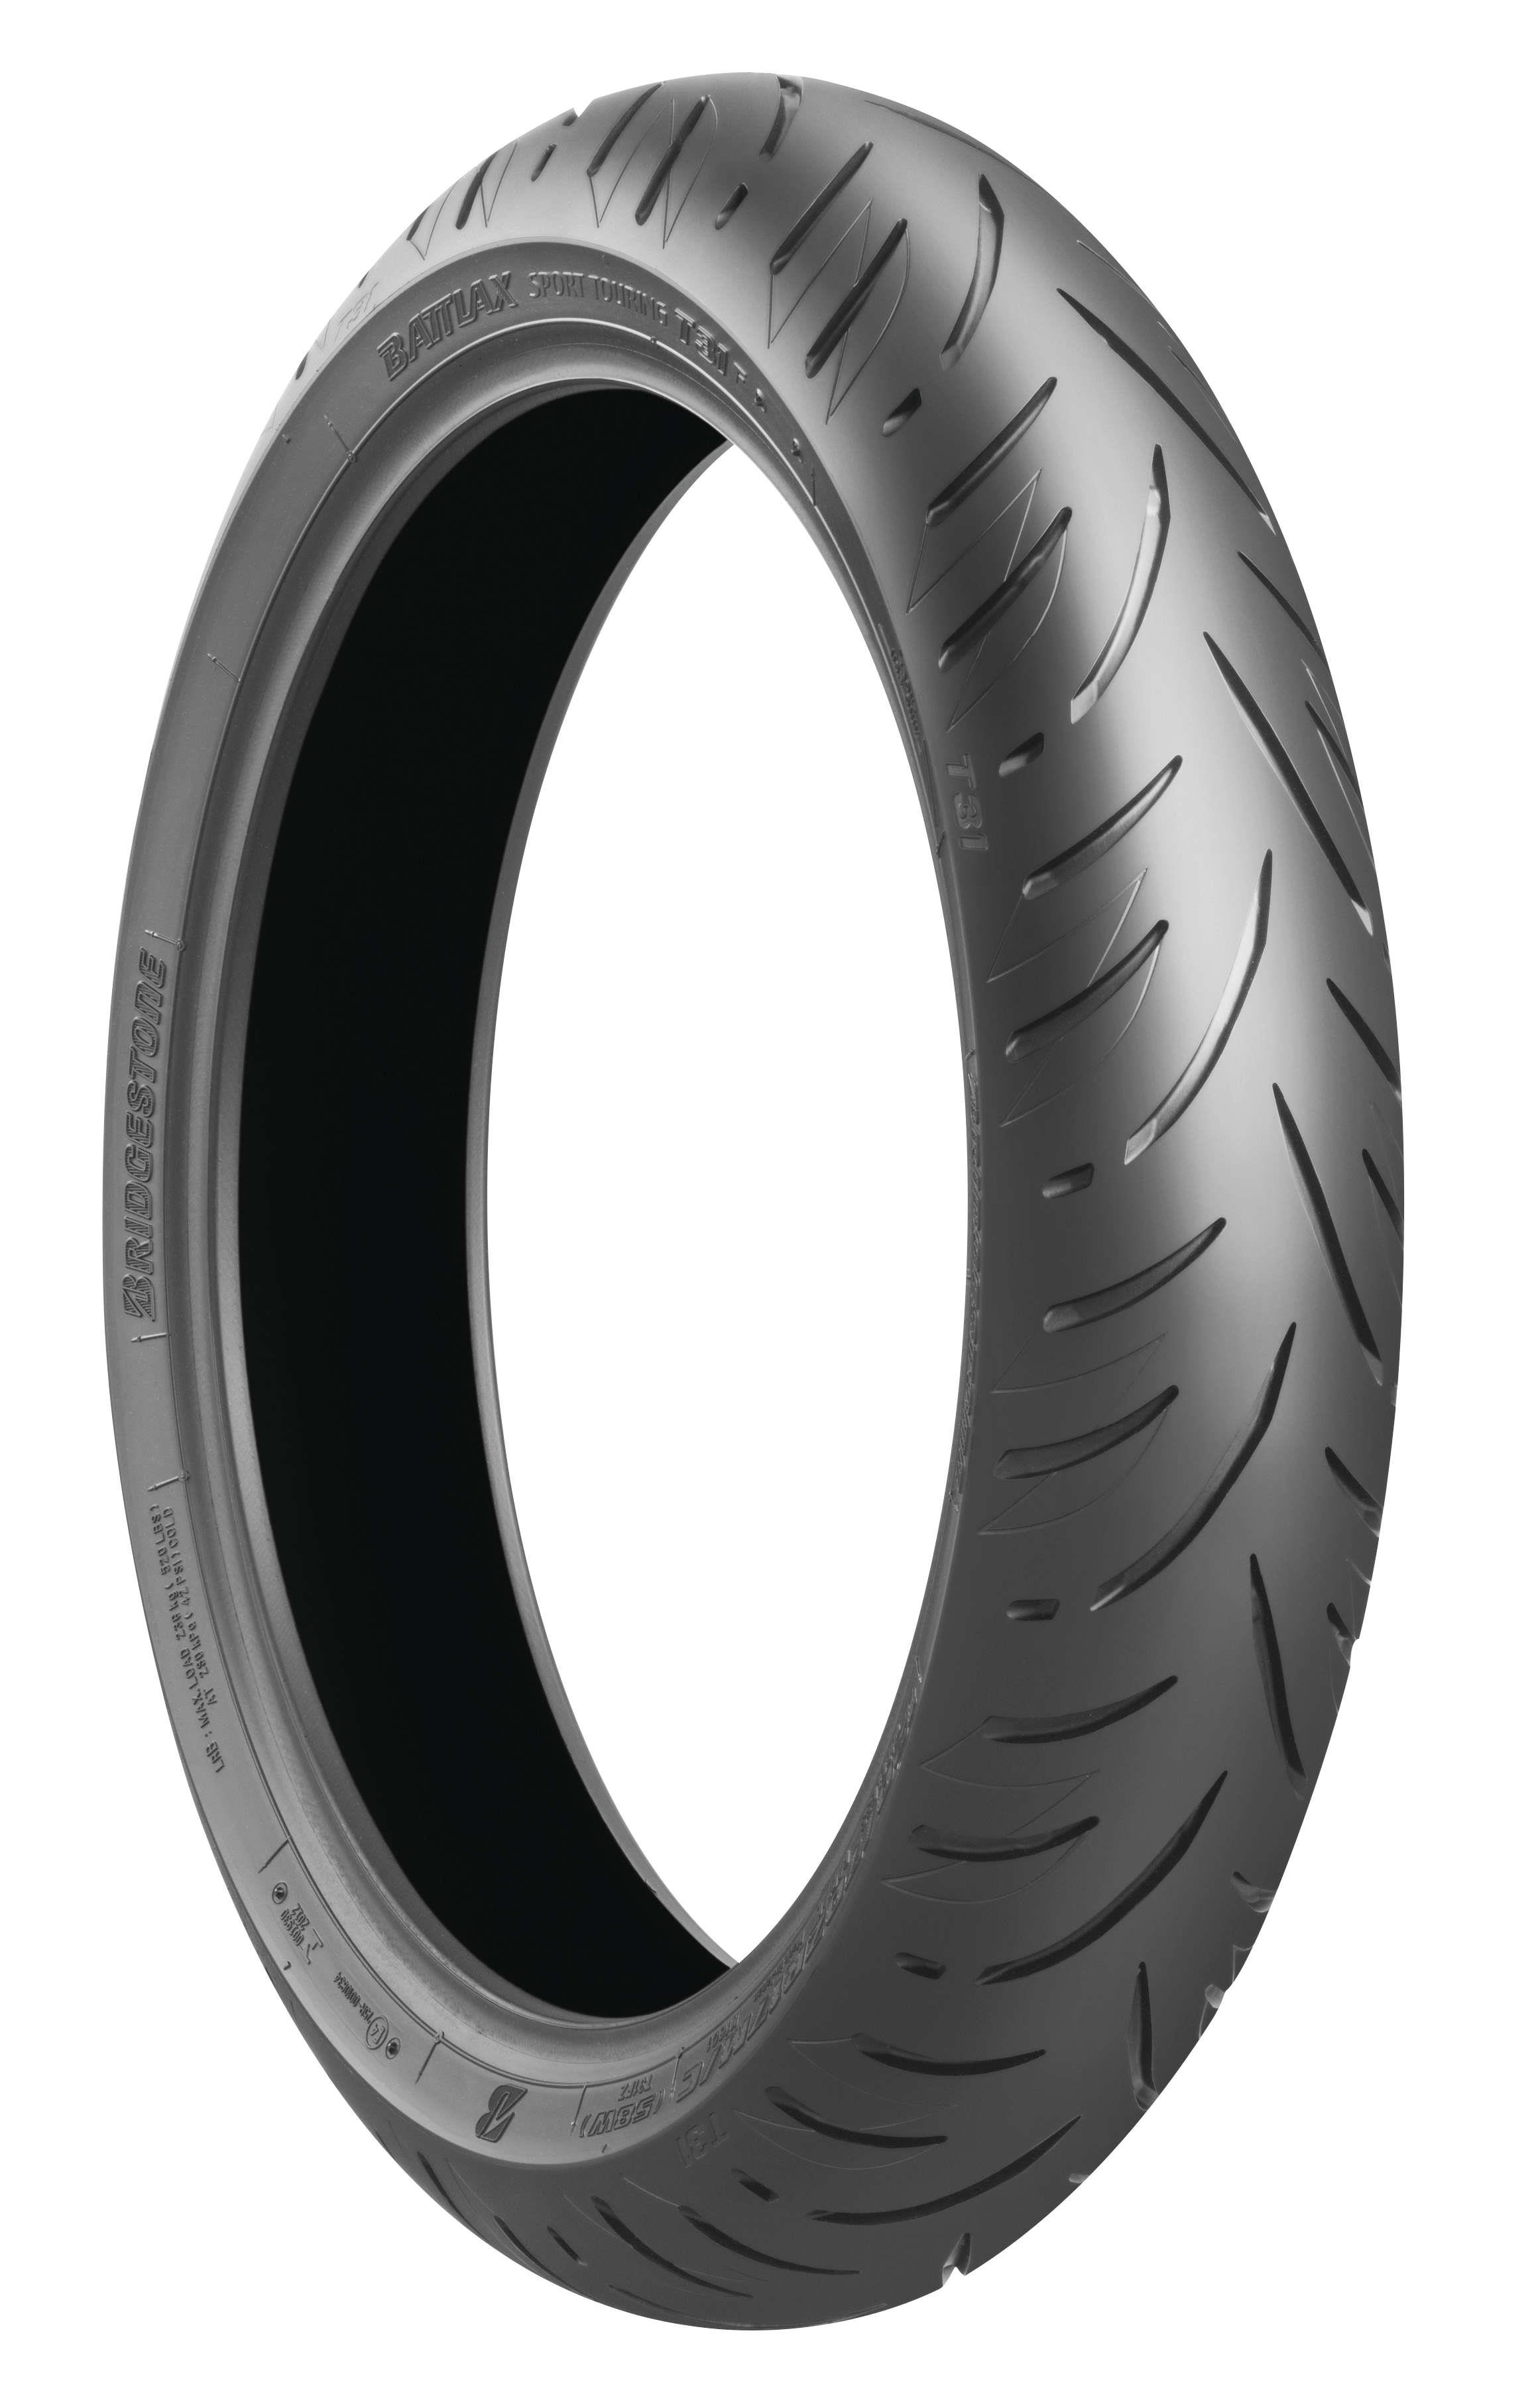 Load Rating: 58 Tire Application: Sport Tire Size: 120//70-17 Front 120//70ZR-17 Bridgestone Battlax S20-G High Performance Radial Tire Tire Type: Street Speed Rating: Tire Construction: Radial 022016 Position: Front Rim Size: 17 W